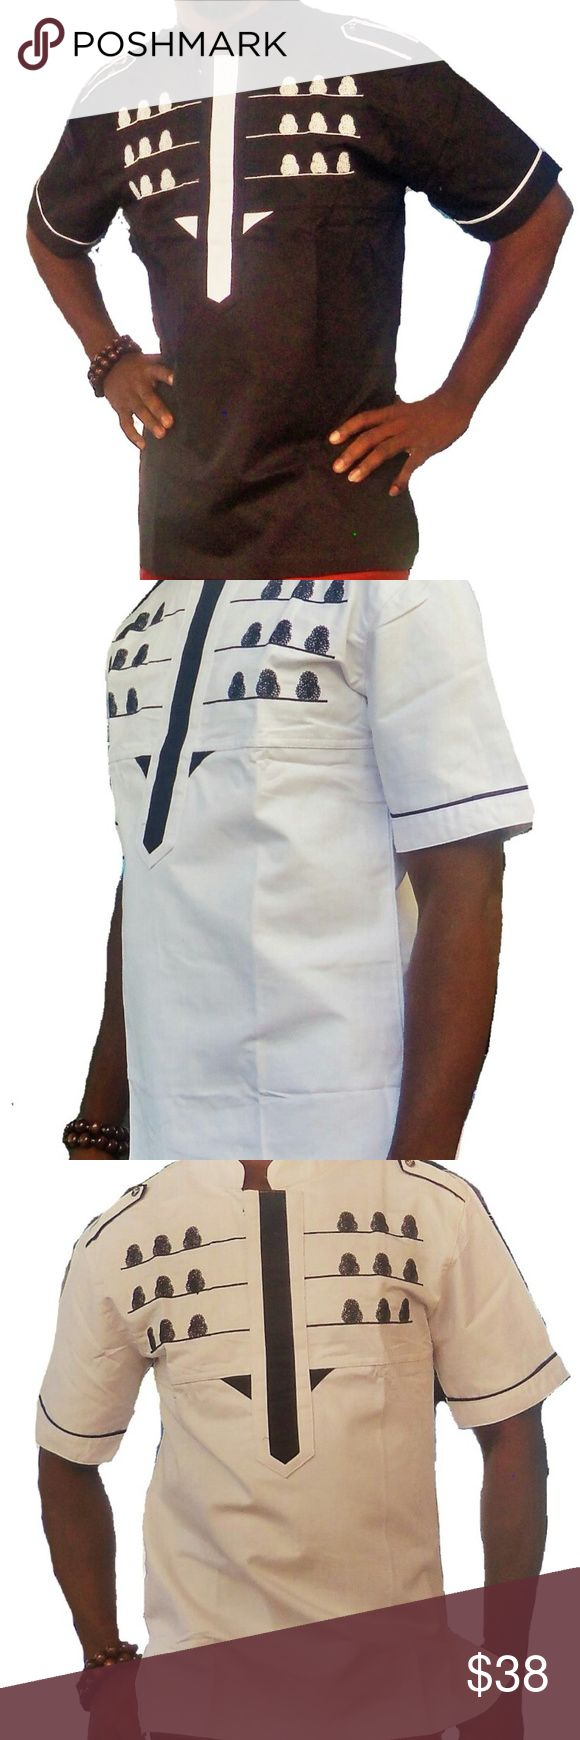 African Mens Clothing This is a classic Men's short Sleeve African Traditional clothing finely and neatly sewn and it's made with high quality fabric. It has a perfect finish and it is ideal for any special occasion be it wedding ceremony, church service, party, outdooring etc.This costume can also be a perfect gift option to a love one. African Clothing Mens Shirts Casual Button Down Shirts